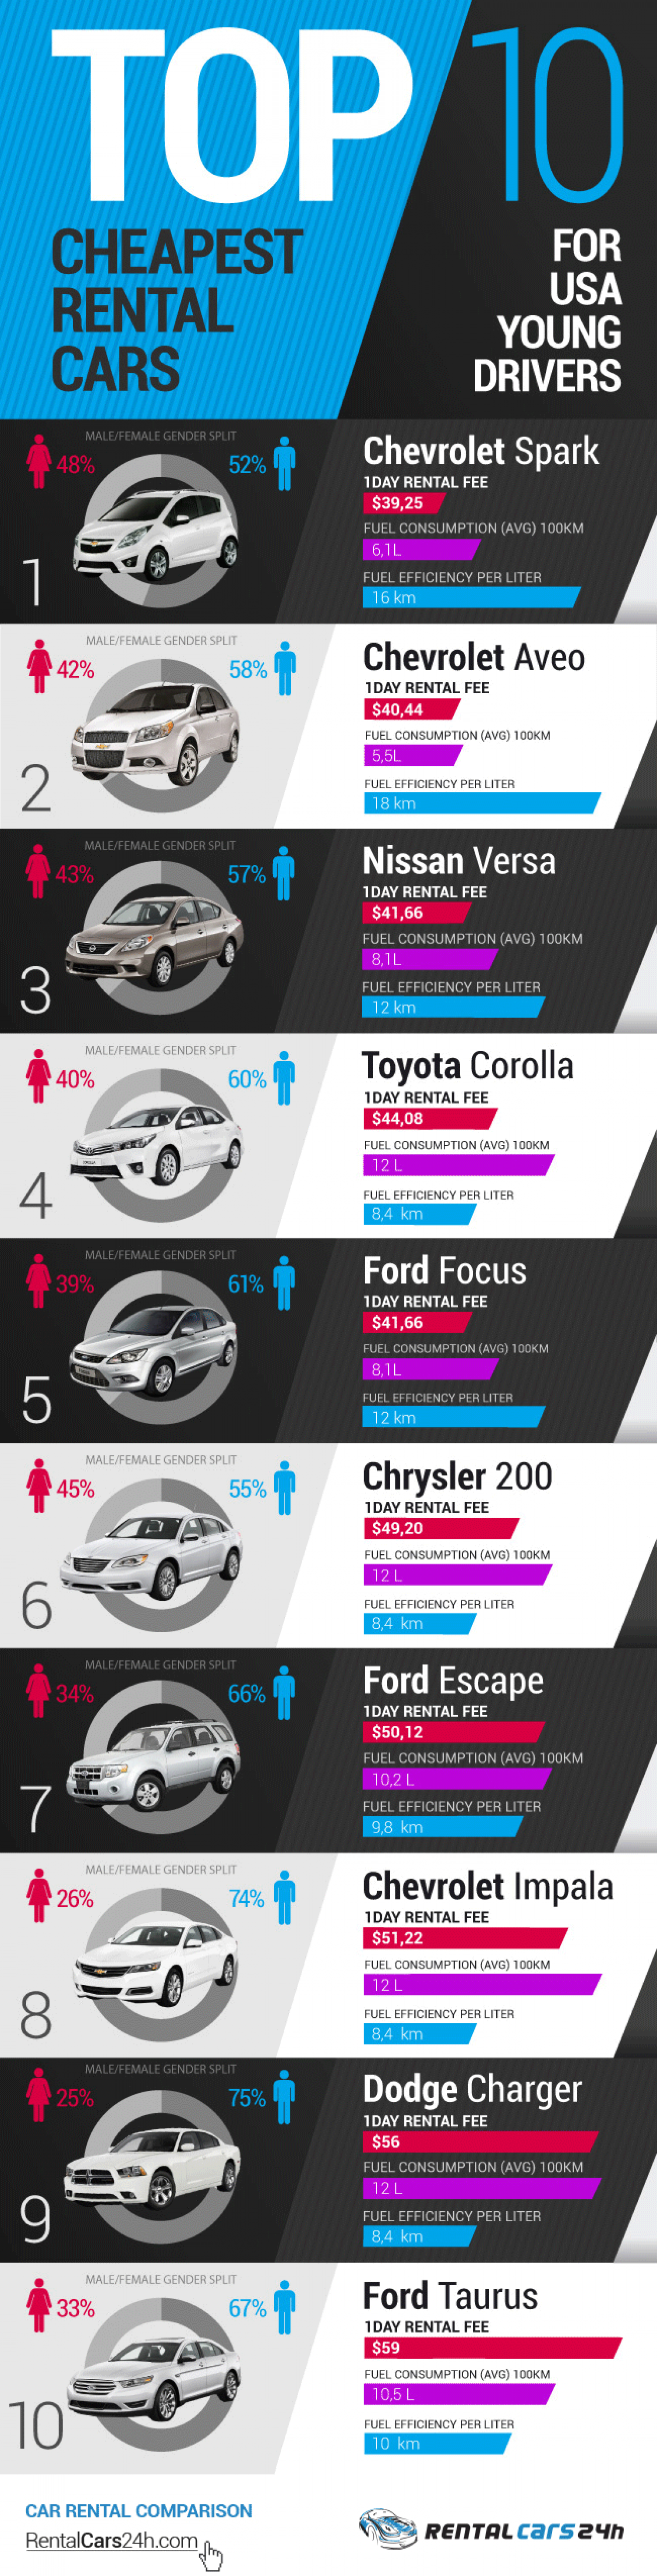 TOP 10 Cheapest Rental Cars For USA Young Drivers! Infographic